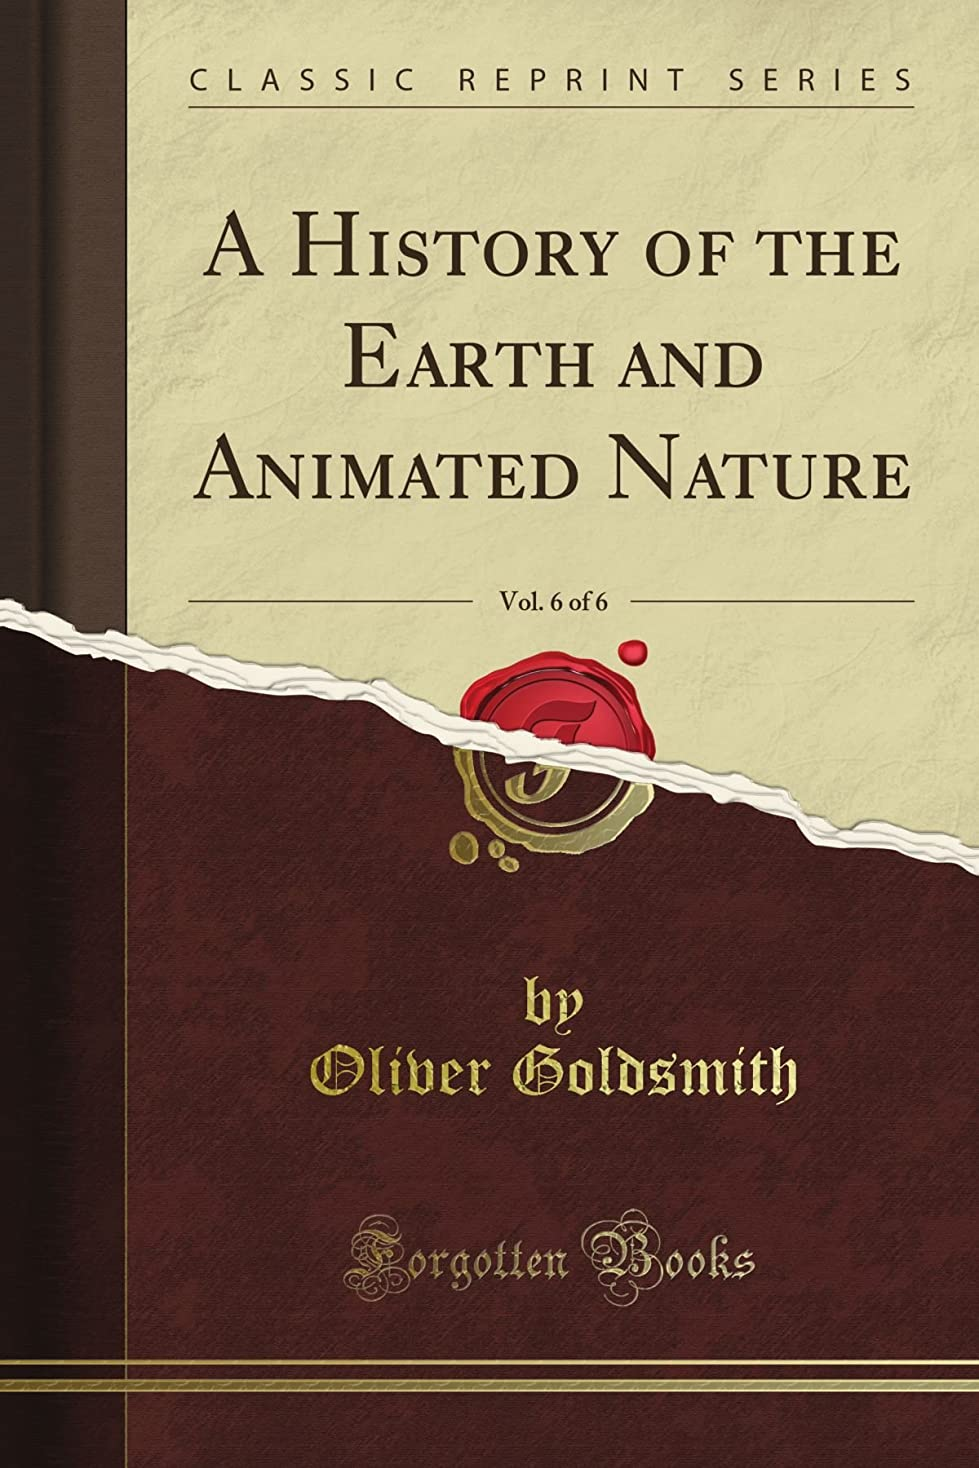 病なごちそう複製するA History of the Earth and Animated Nature, Vol. 6 of 6 (Classic Reprint)